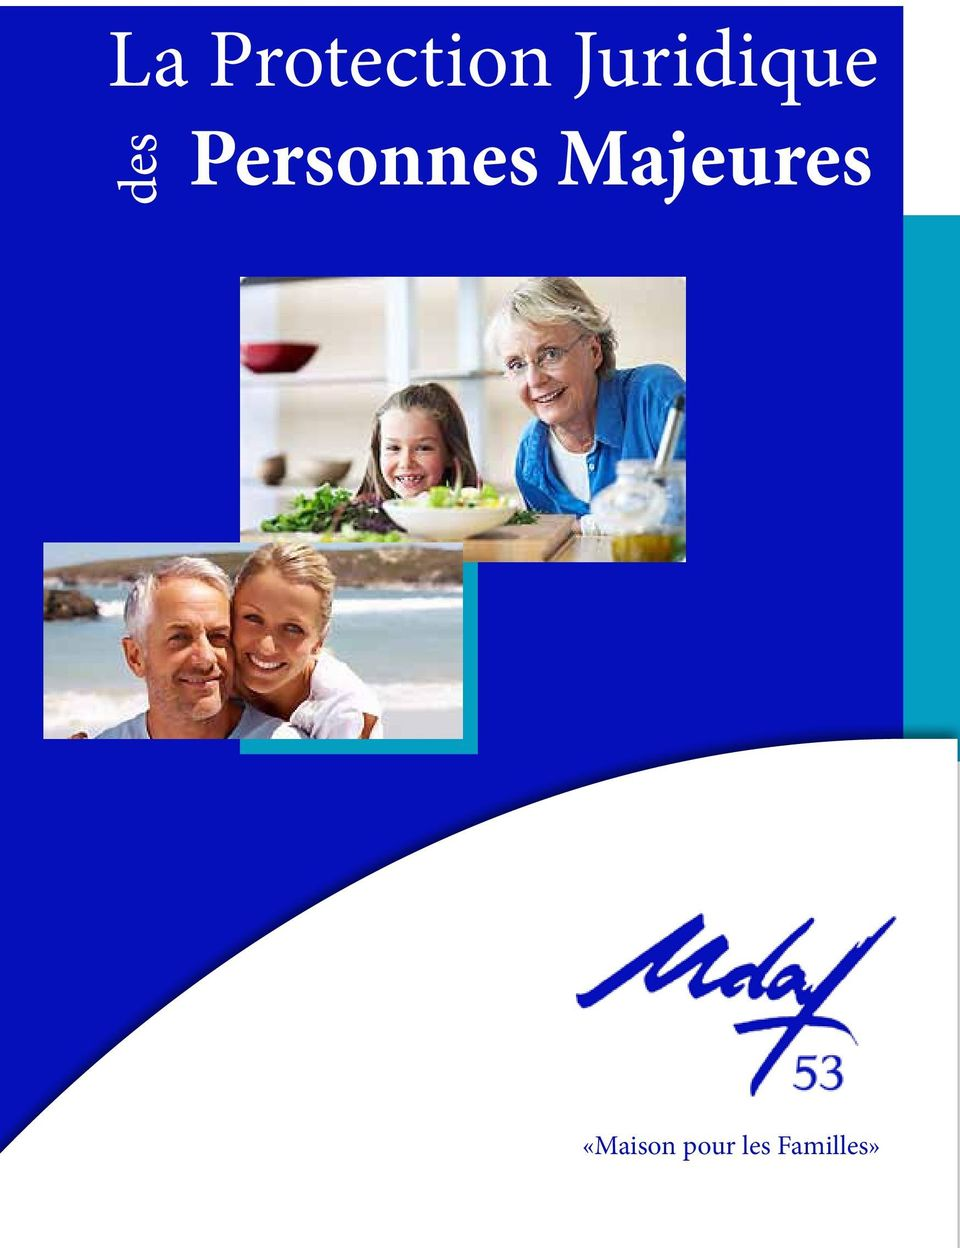 Personnes Majeures